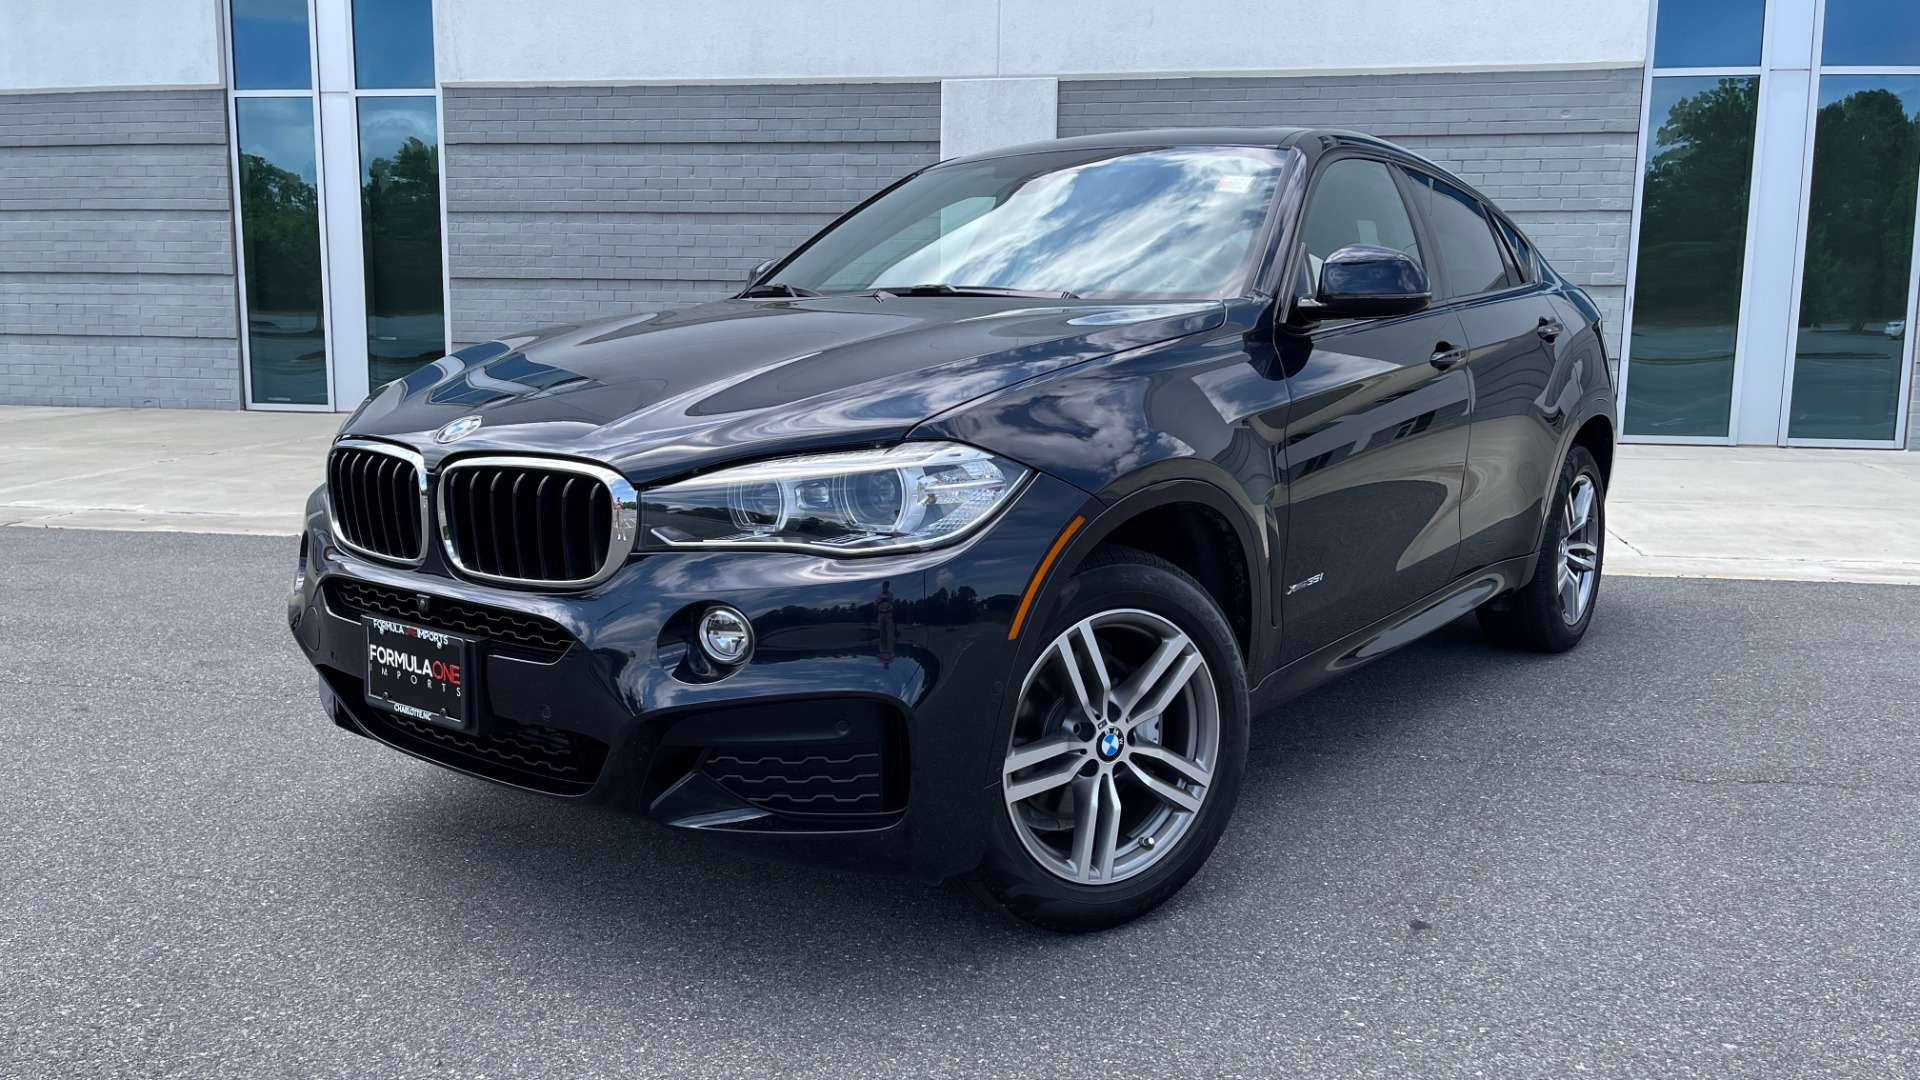 Used 2018 BMW X6 XDRIVE35I M-SPORT / DRVR ASST / PRK ASST / H/K SND / APPLE / WIRELESS CHARG for sale $51,995 at Formula Imports in Charlotte NC 28227 1